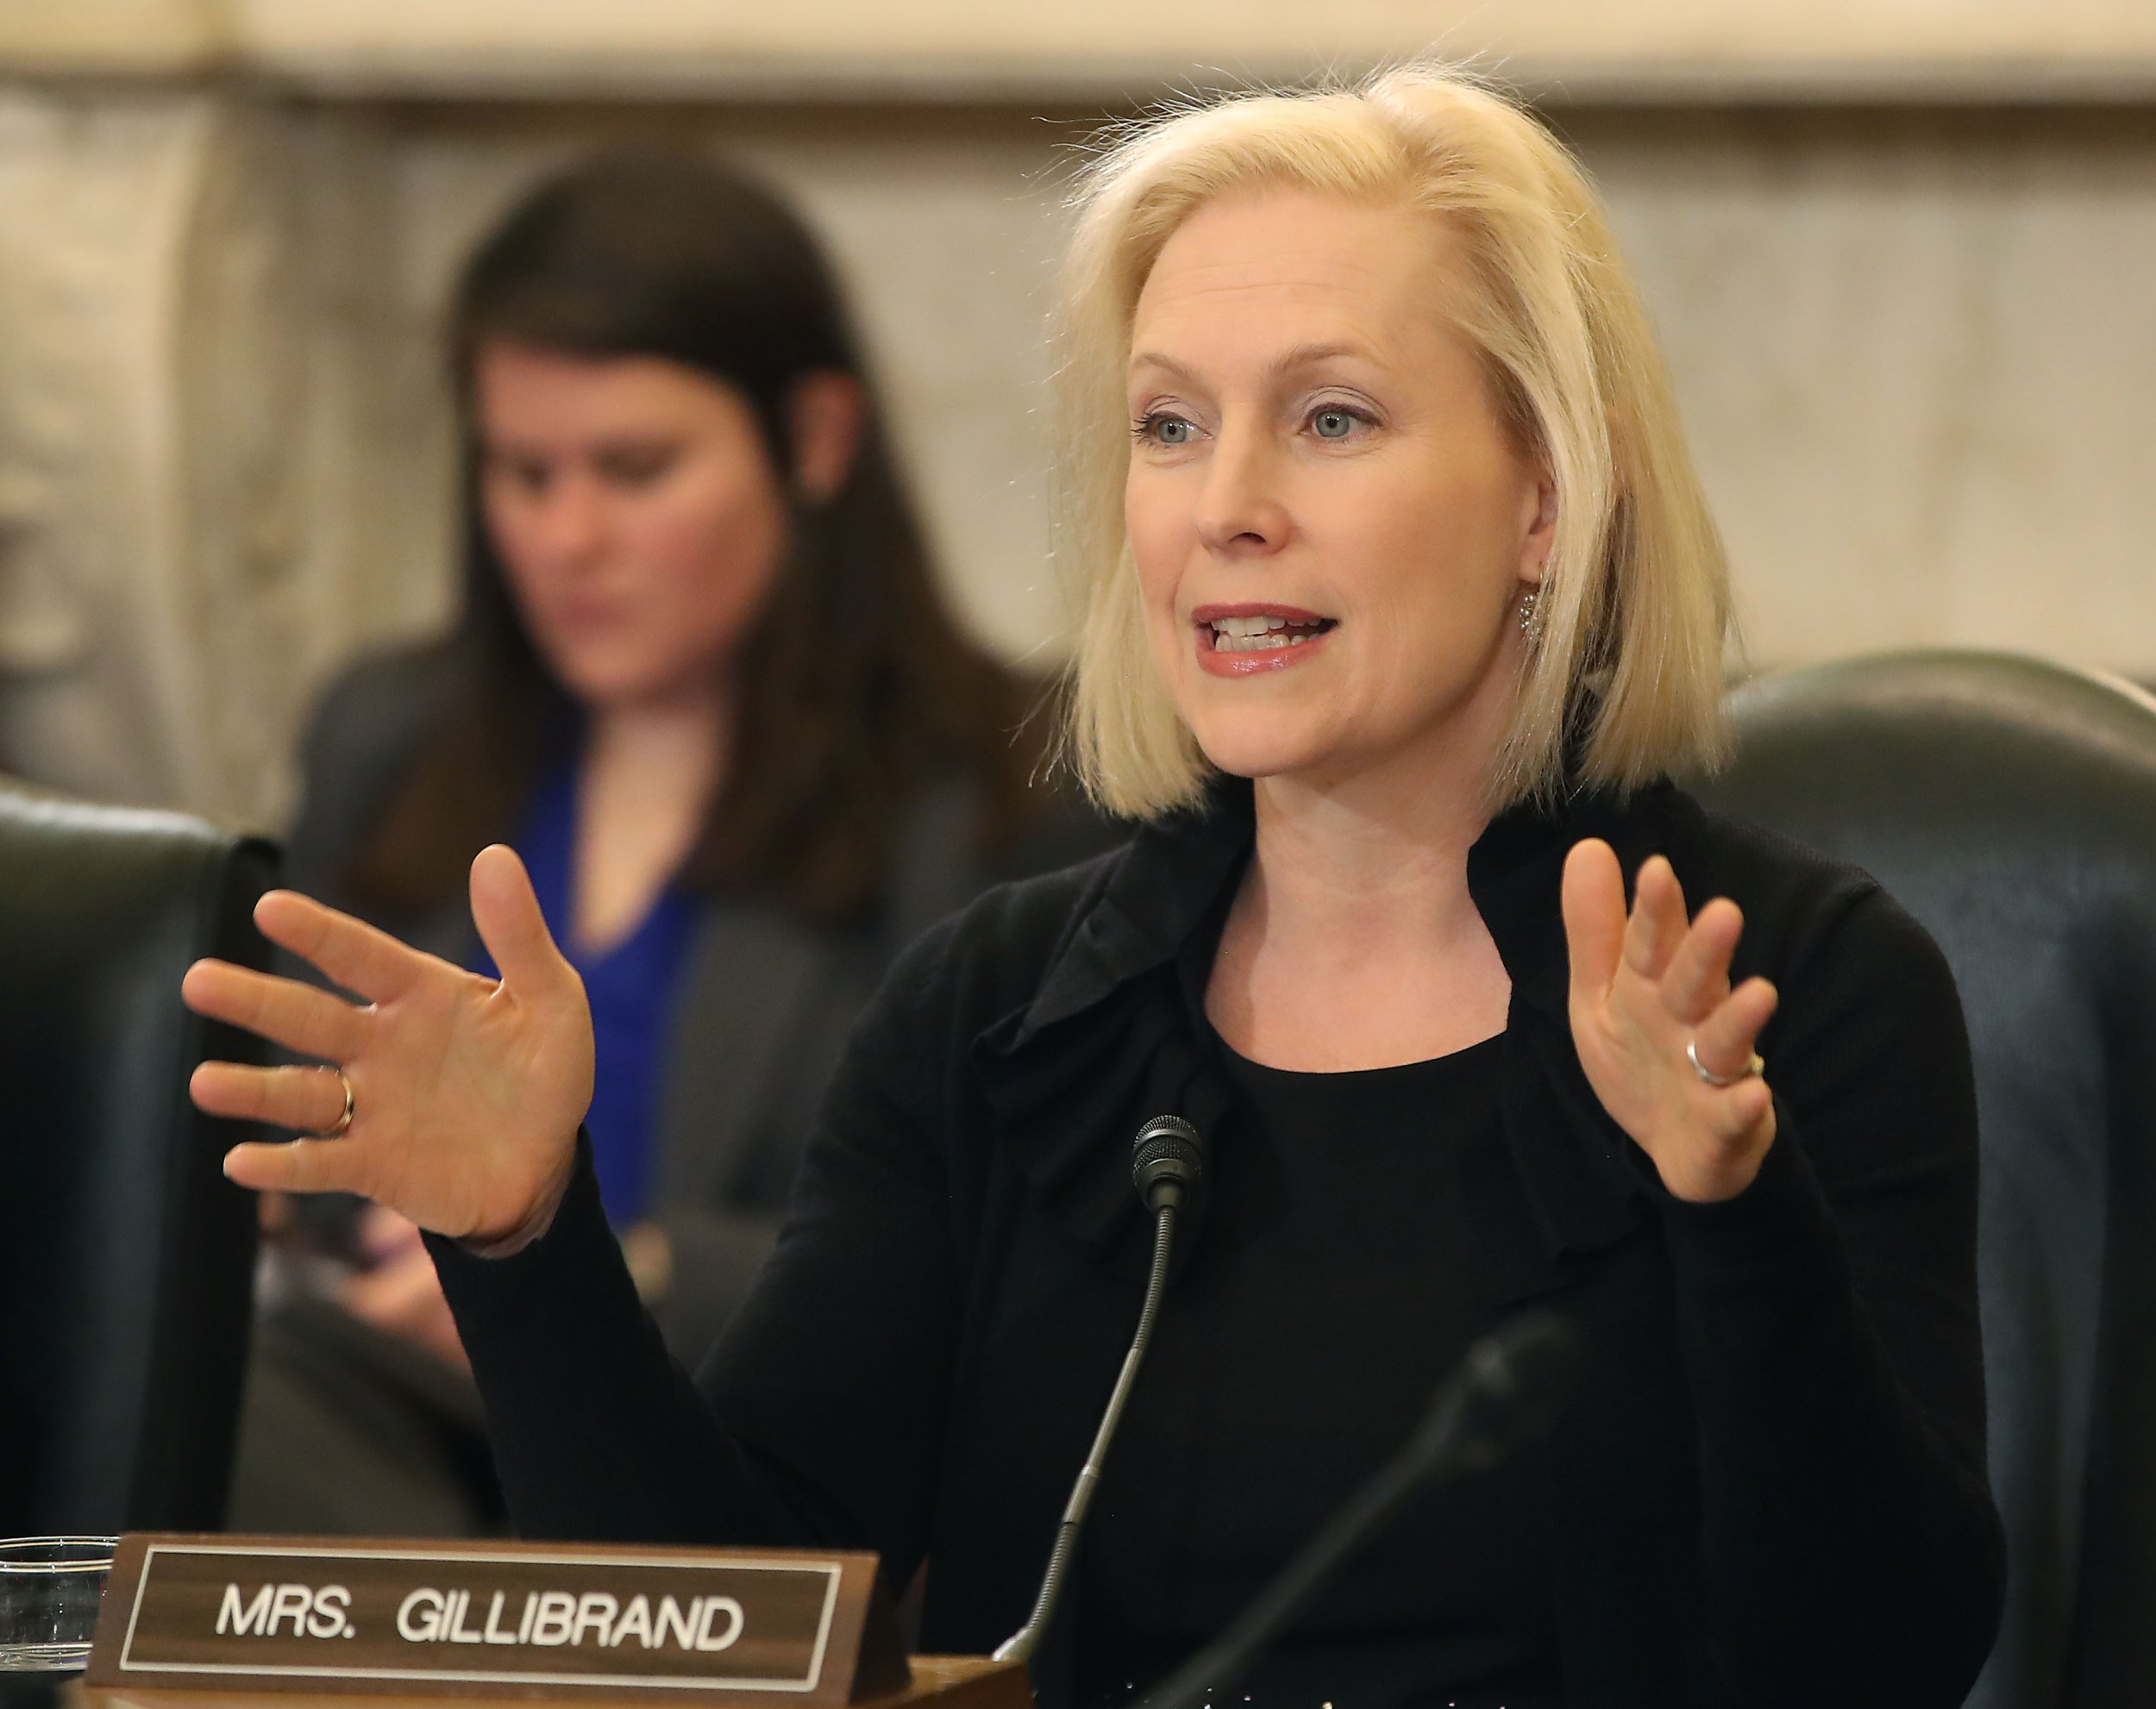 Gillibrand speaks in DC